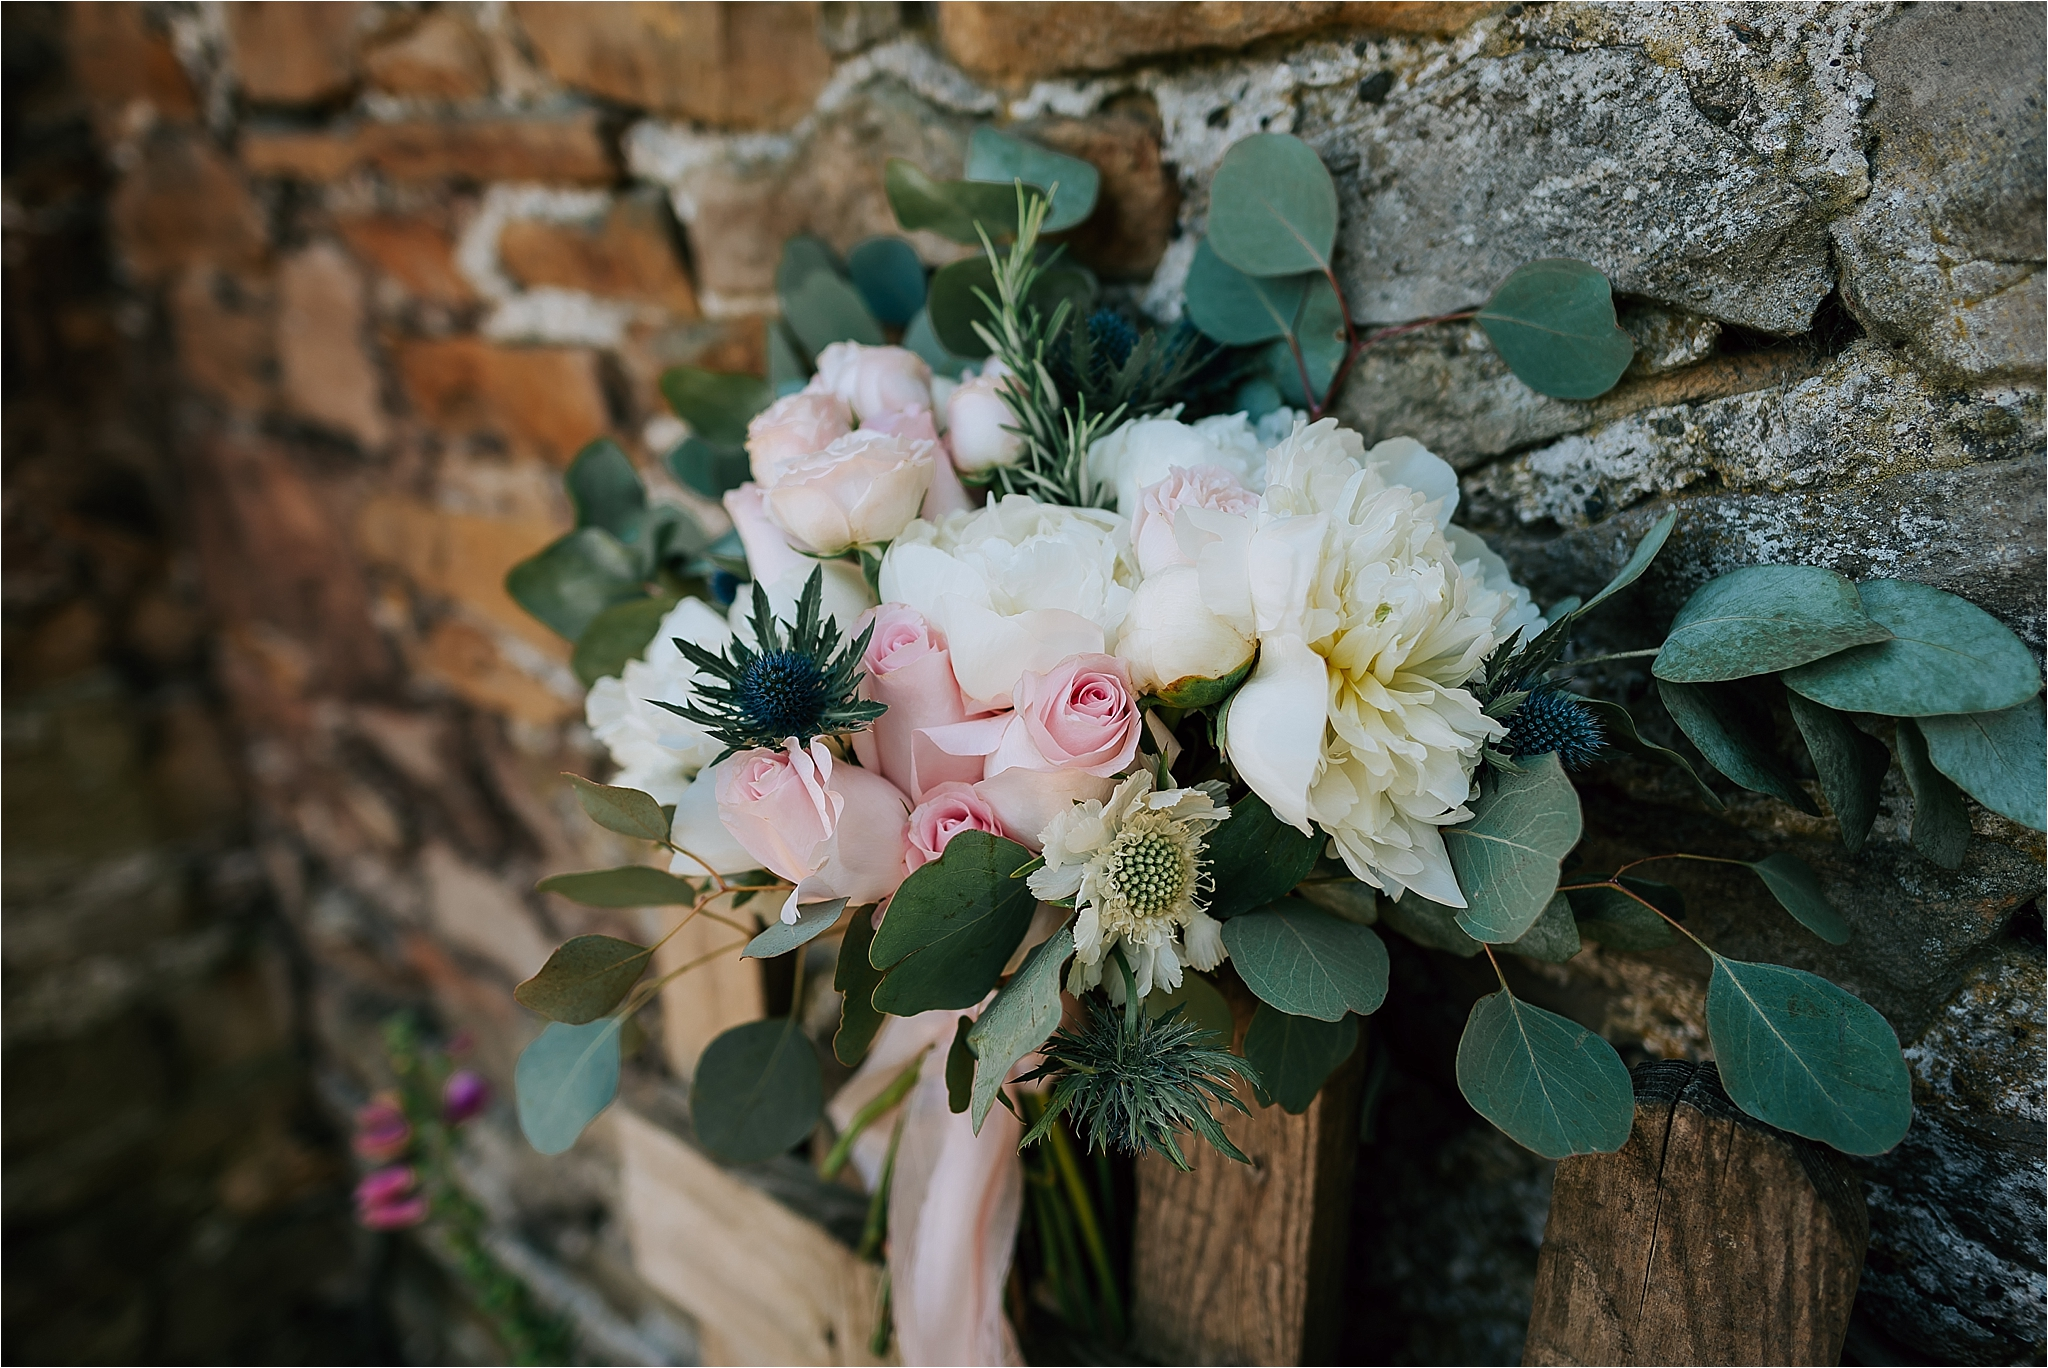 Blush tones wedding flowers by floral designs by kelly, clitheroe